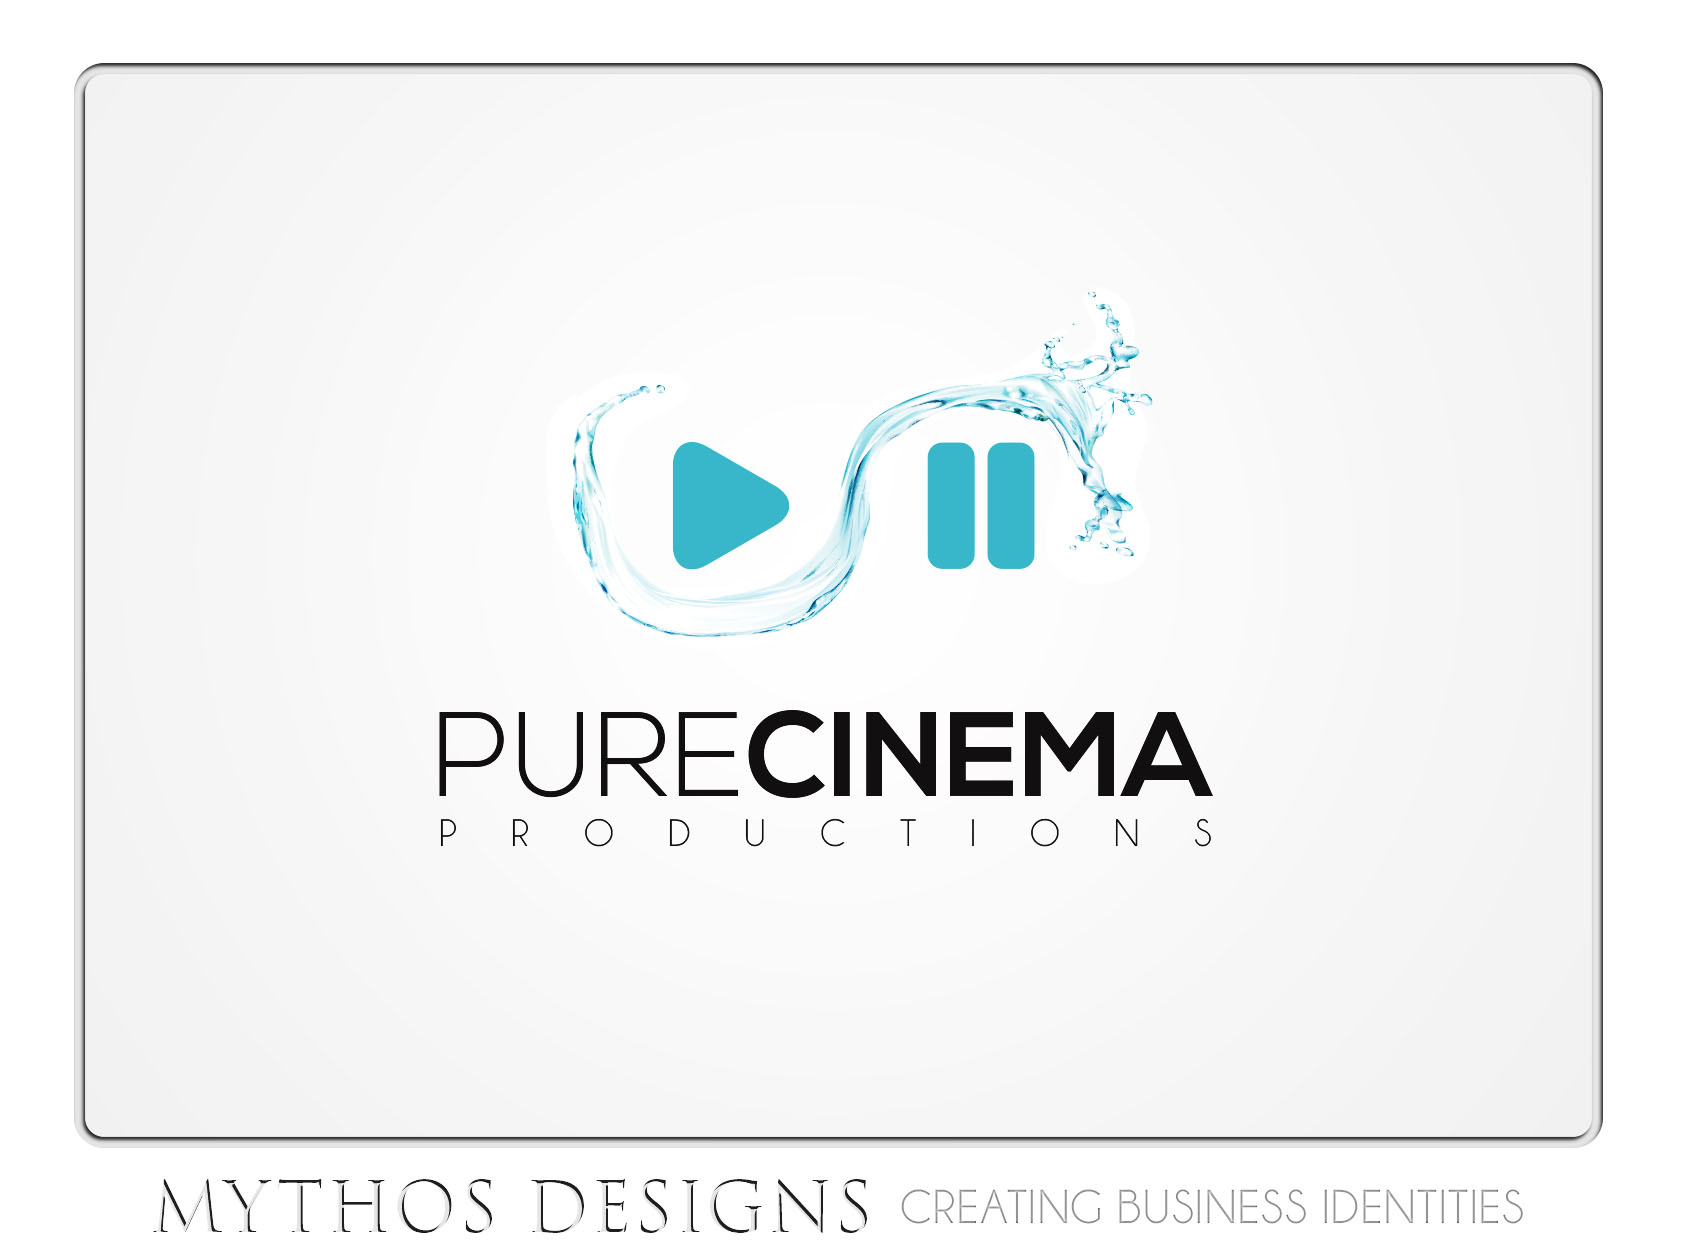 Logo Design by Mythos Designs - Entry No. 50 in the Logo Design Contest Imaginative Logo Design for Pure Cinema.